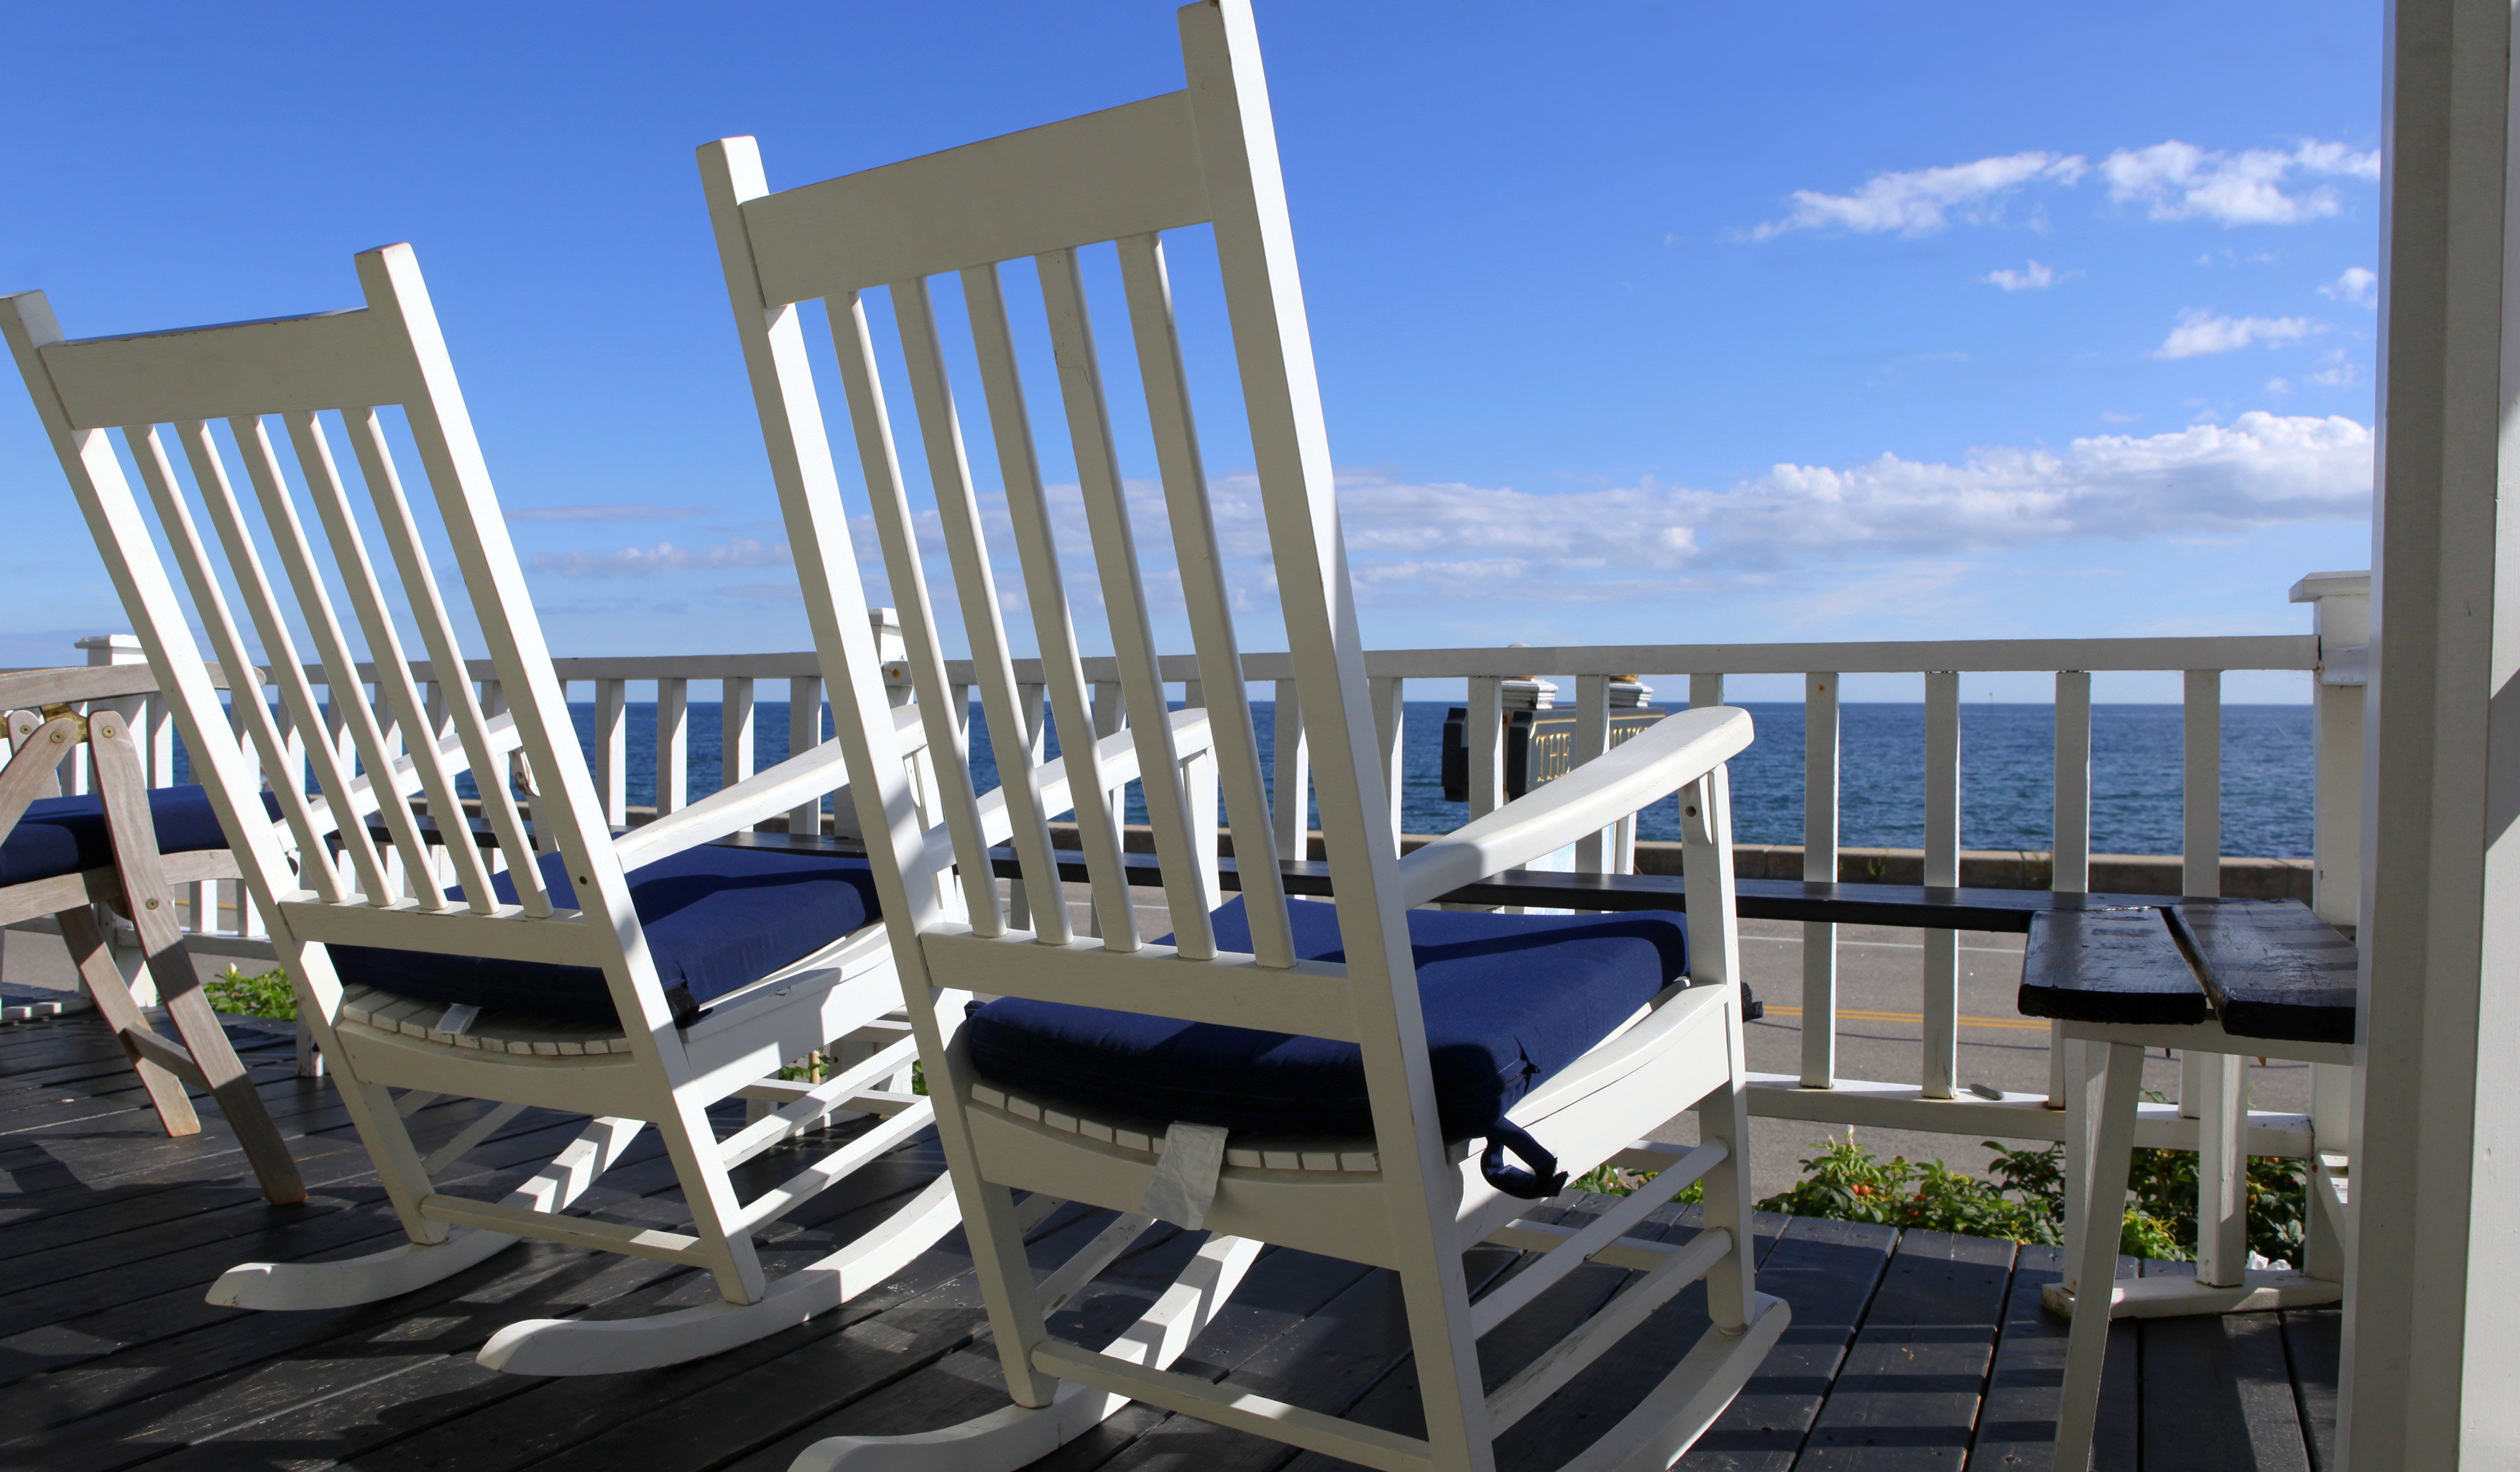 Balcony Beachfront Country Hotels Inn Patio Scenic views Waterfront chair property condominium marina dock Dining white headquarters lawn Resort porch overlooking set Deck dining table